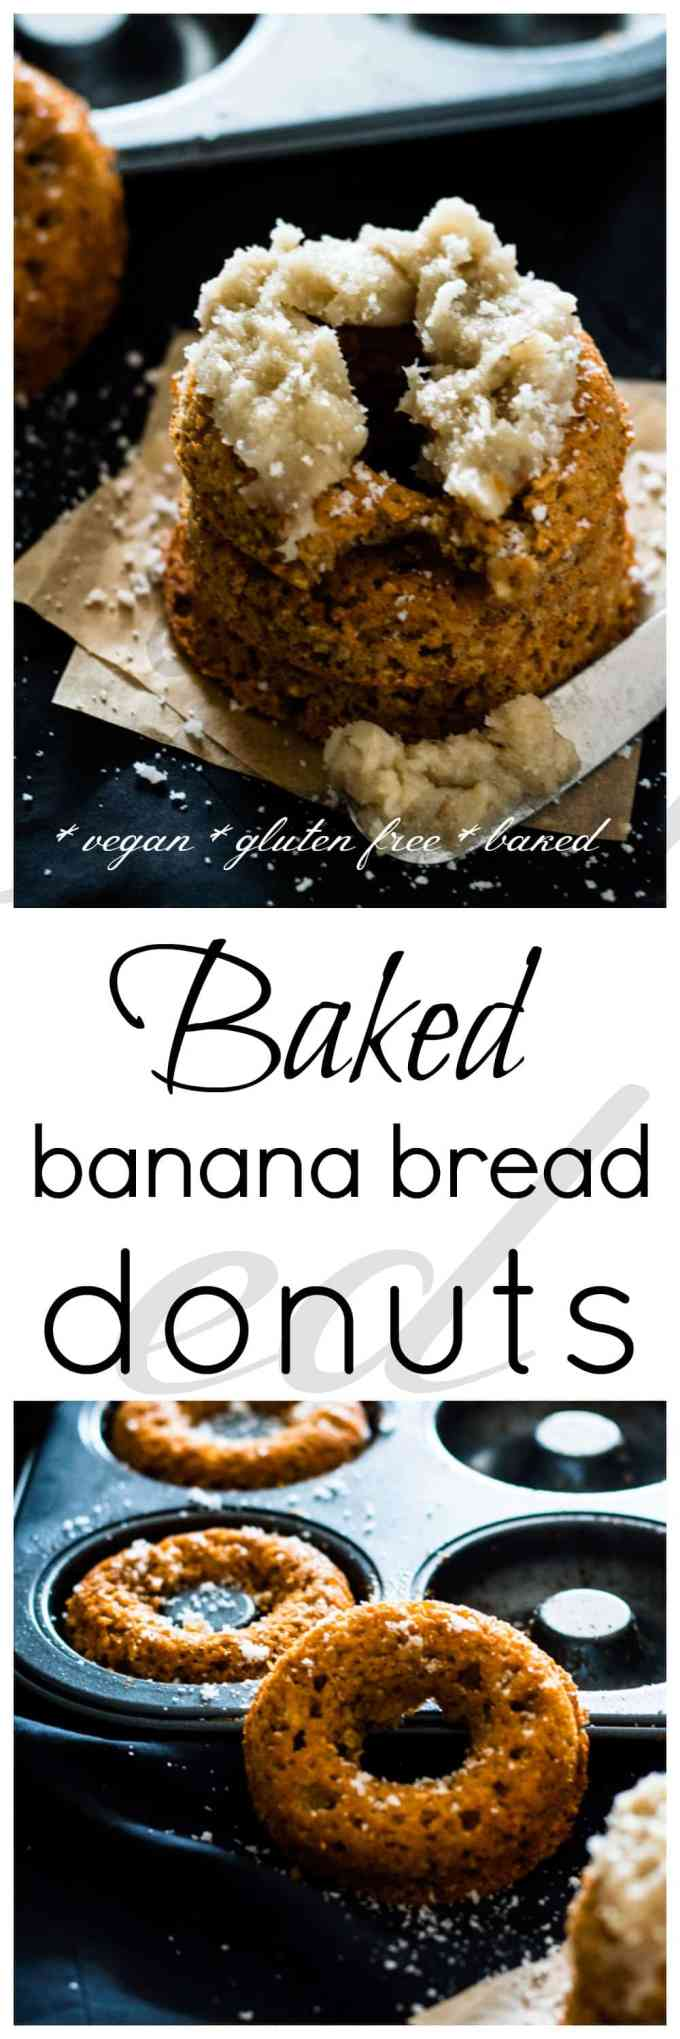 These baked banana breakfast doughnuts will fill up your hungry belly and leave you feeling ready to take on the day. The perfect grab-and-go breakfast, or top with some banana frosting and pair with a cup of tea for a delicious afternoon snack